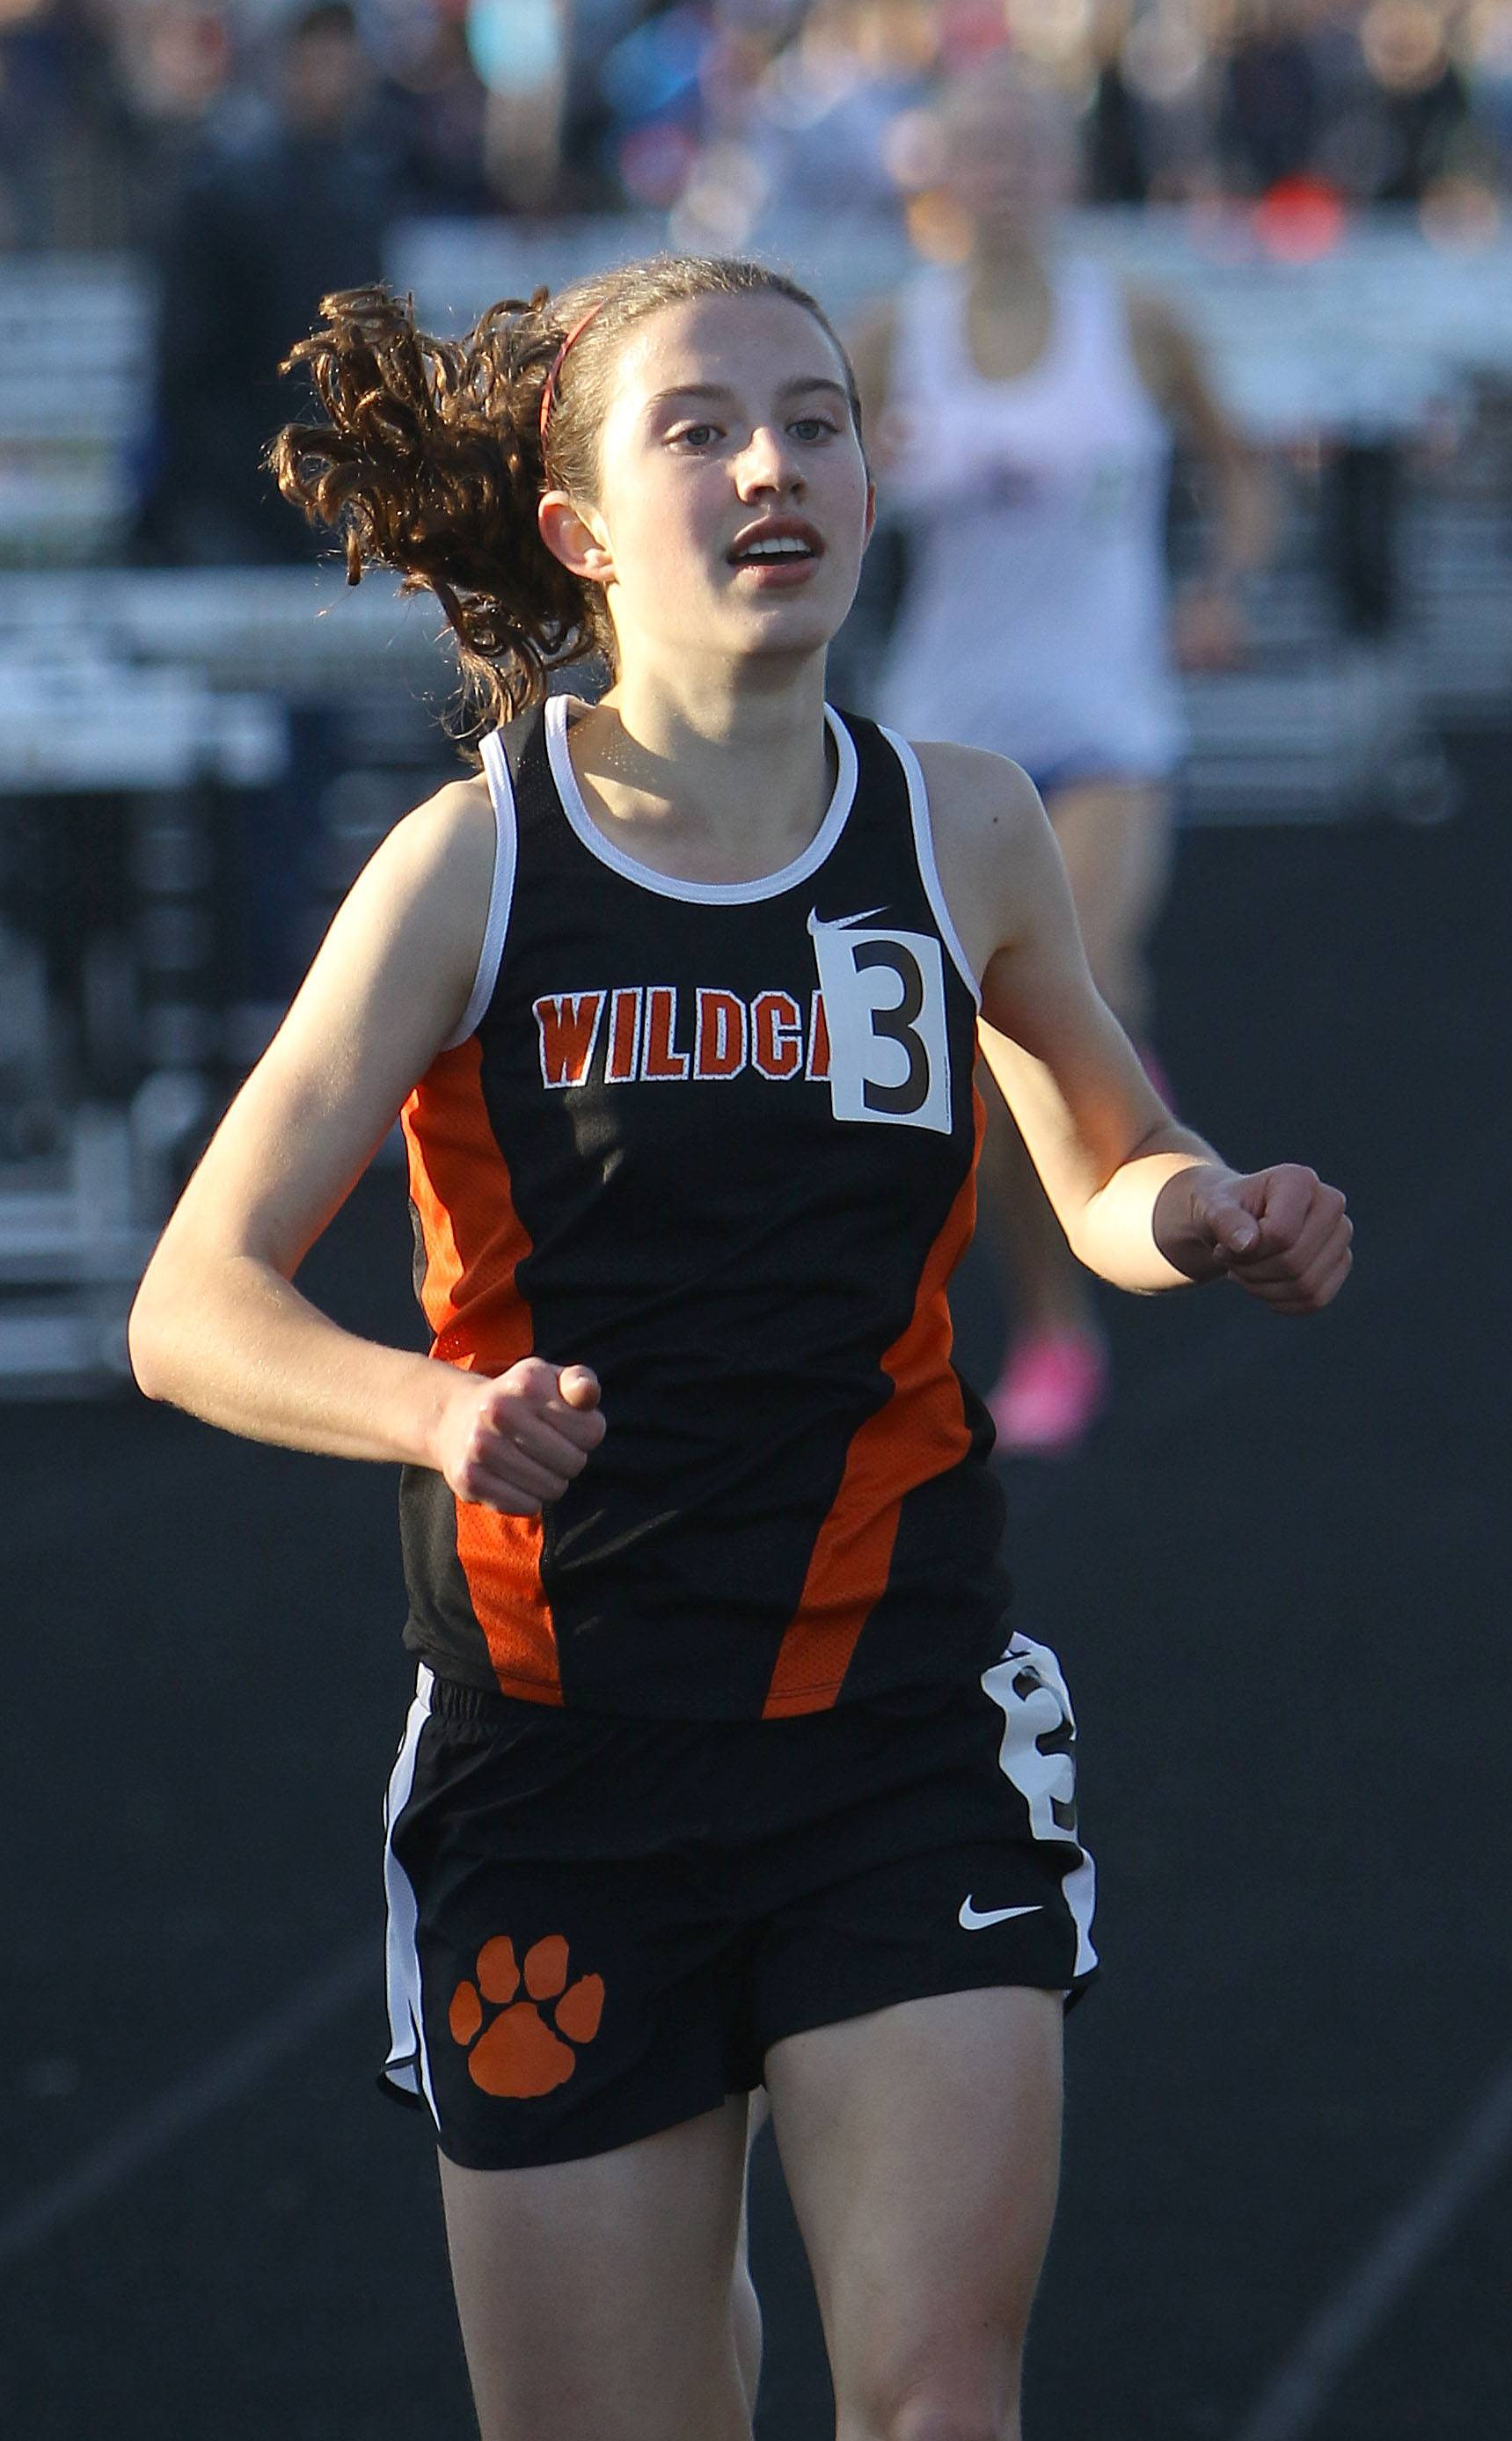 Libertyville's Melissa Manetsch wins the 3,200-meter run during the Lake County meet Friday at Grayslake North High School.